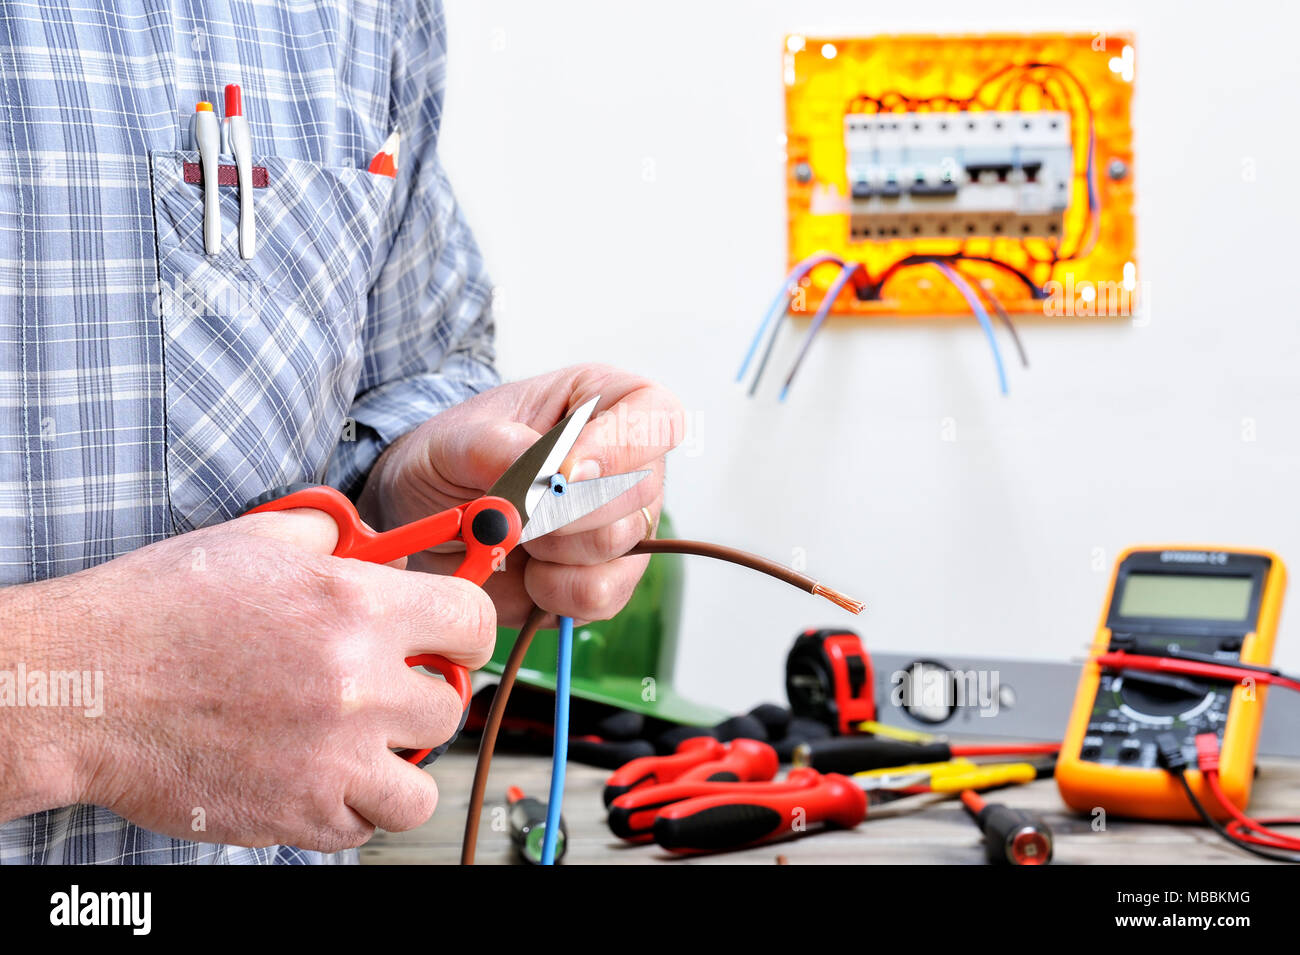 Electrician Technician At Work In A Residential Electric Wiring Installation Cuts The Cable